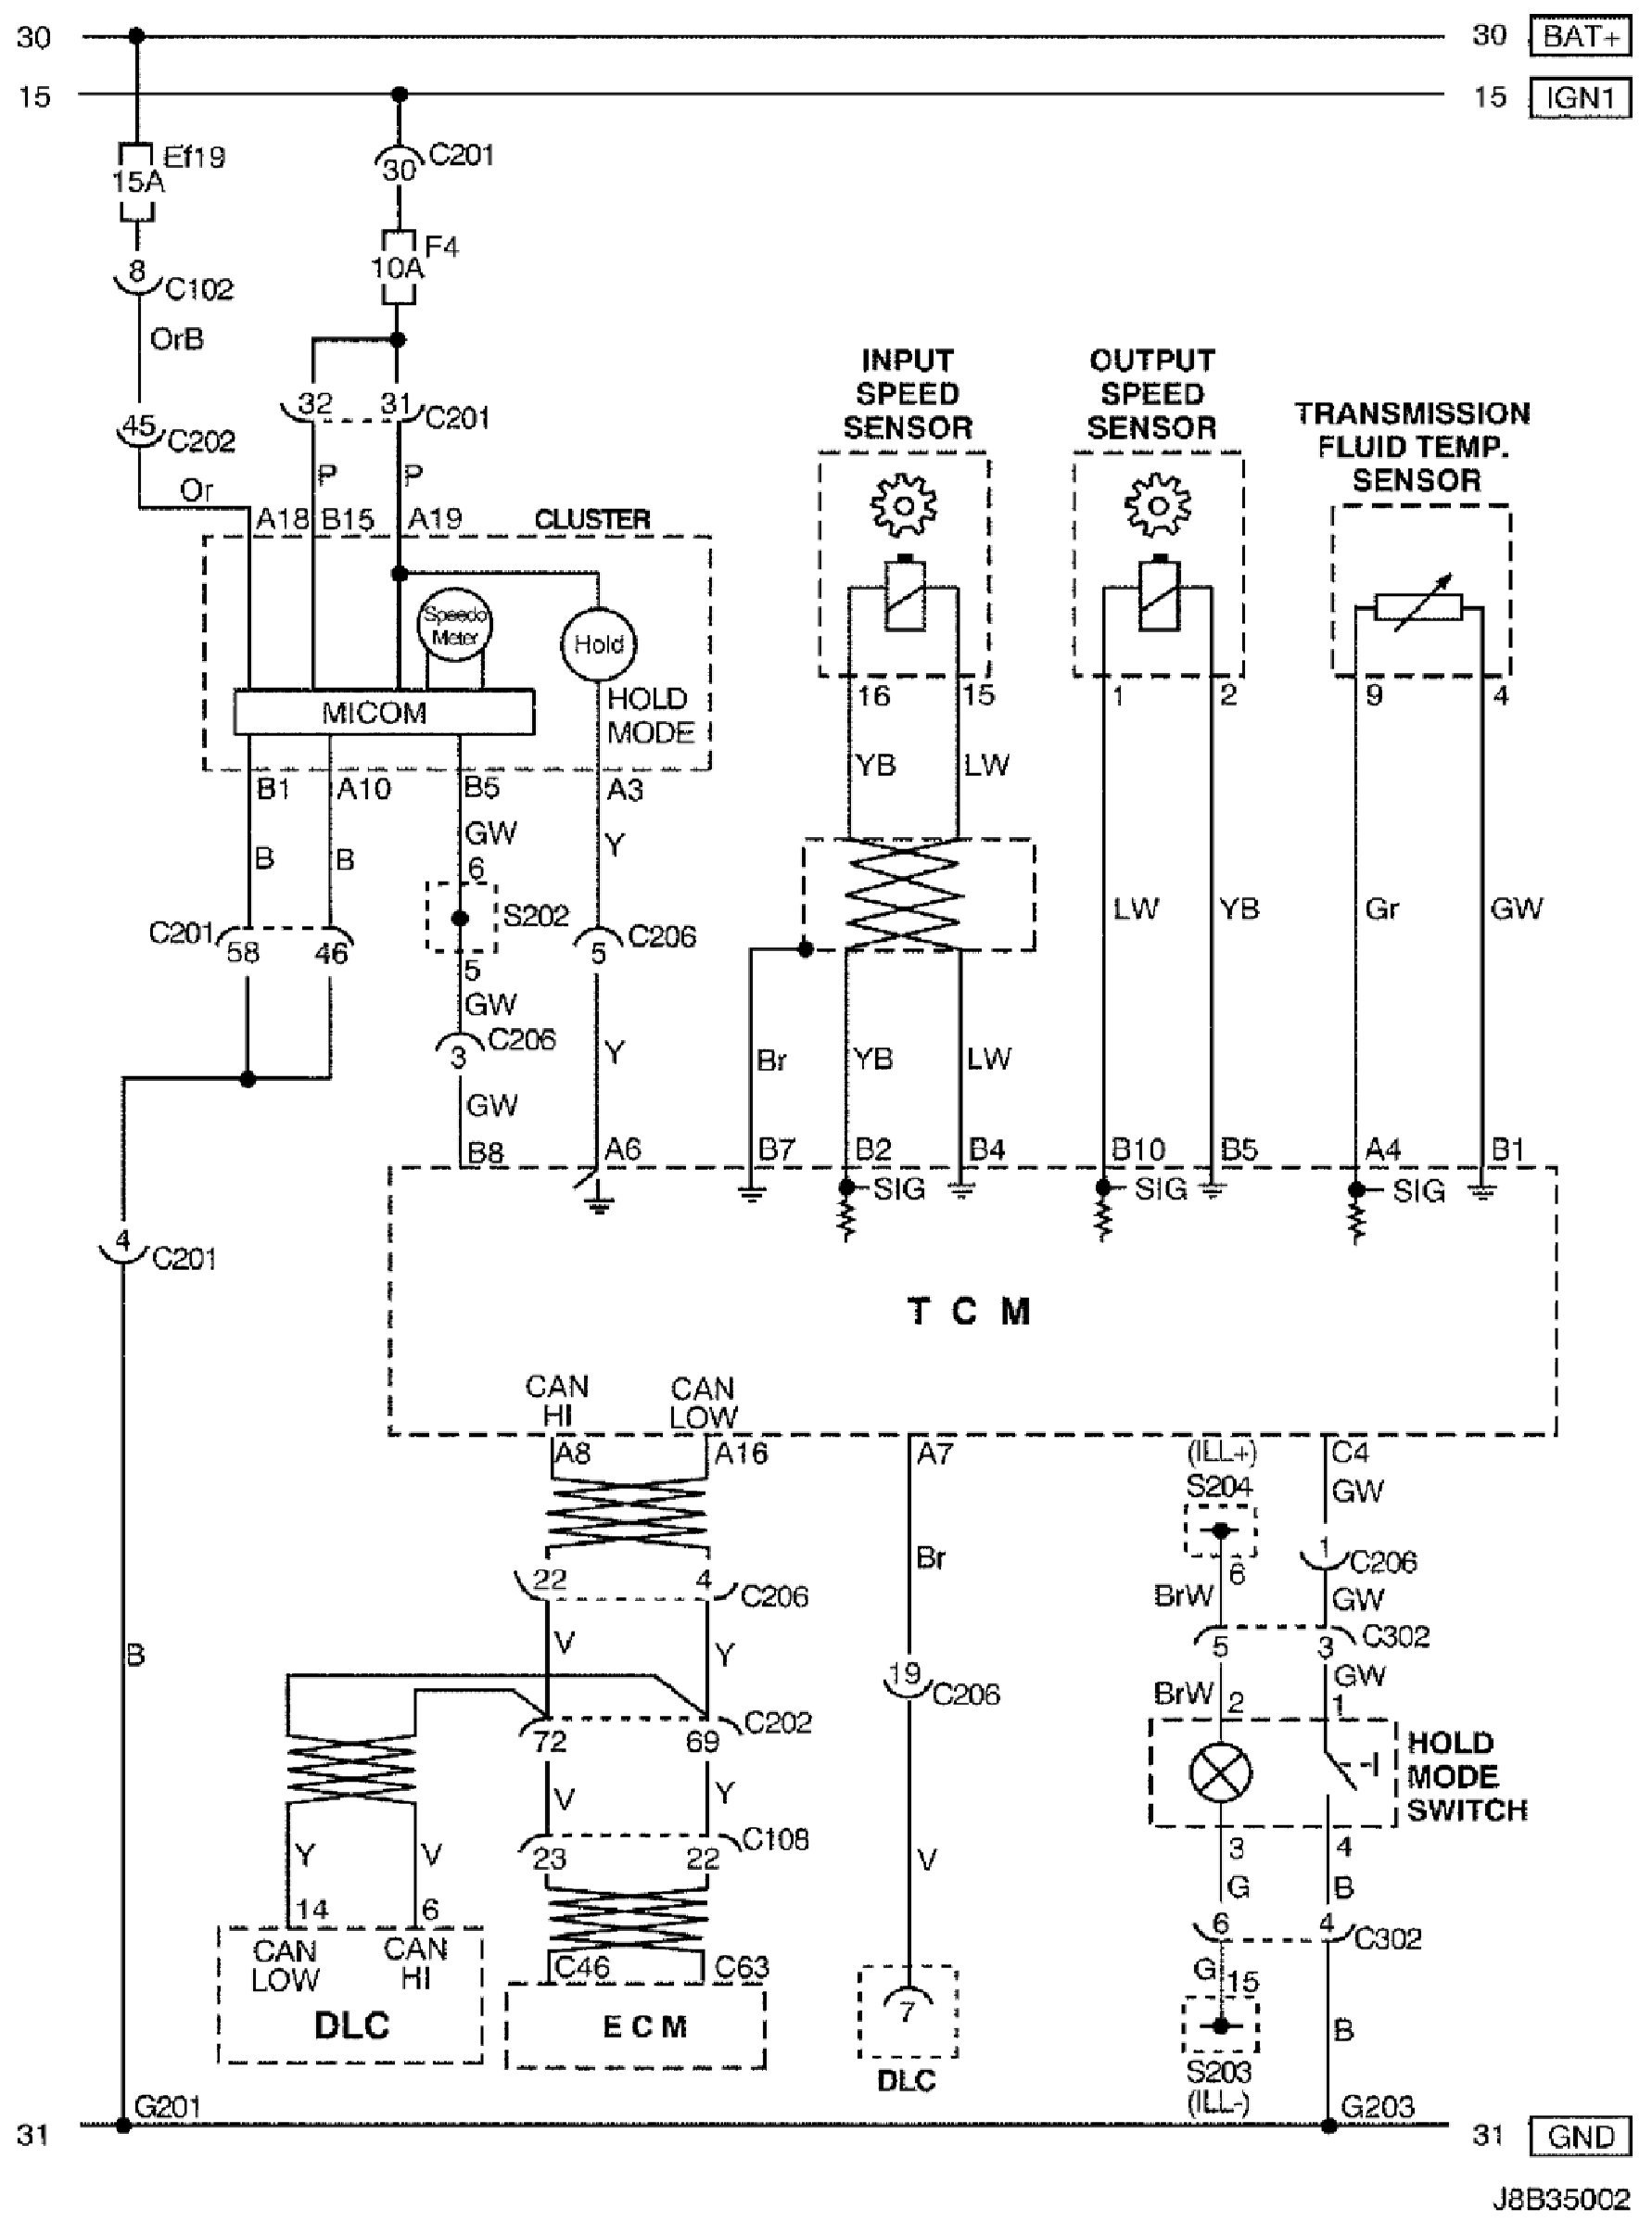 0996b43f8024cd8e moreover leak 20  20stereo 2020 20  20circuit 20diagram as well 0996b43f8024cda2 besides  as well 0996b43f80e61f8c furthermore 0996b43f80e61ede moreover 2006Mazda3OWD together with 0996b43f8024cd8b as well 0996b43f8024cd8f as well 2012 04 26 191934 tcm9 together with 0996b43f8024cd97. on ford f transmission schematic wiring diagrams image free suzuki forenza air bag diagram smart